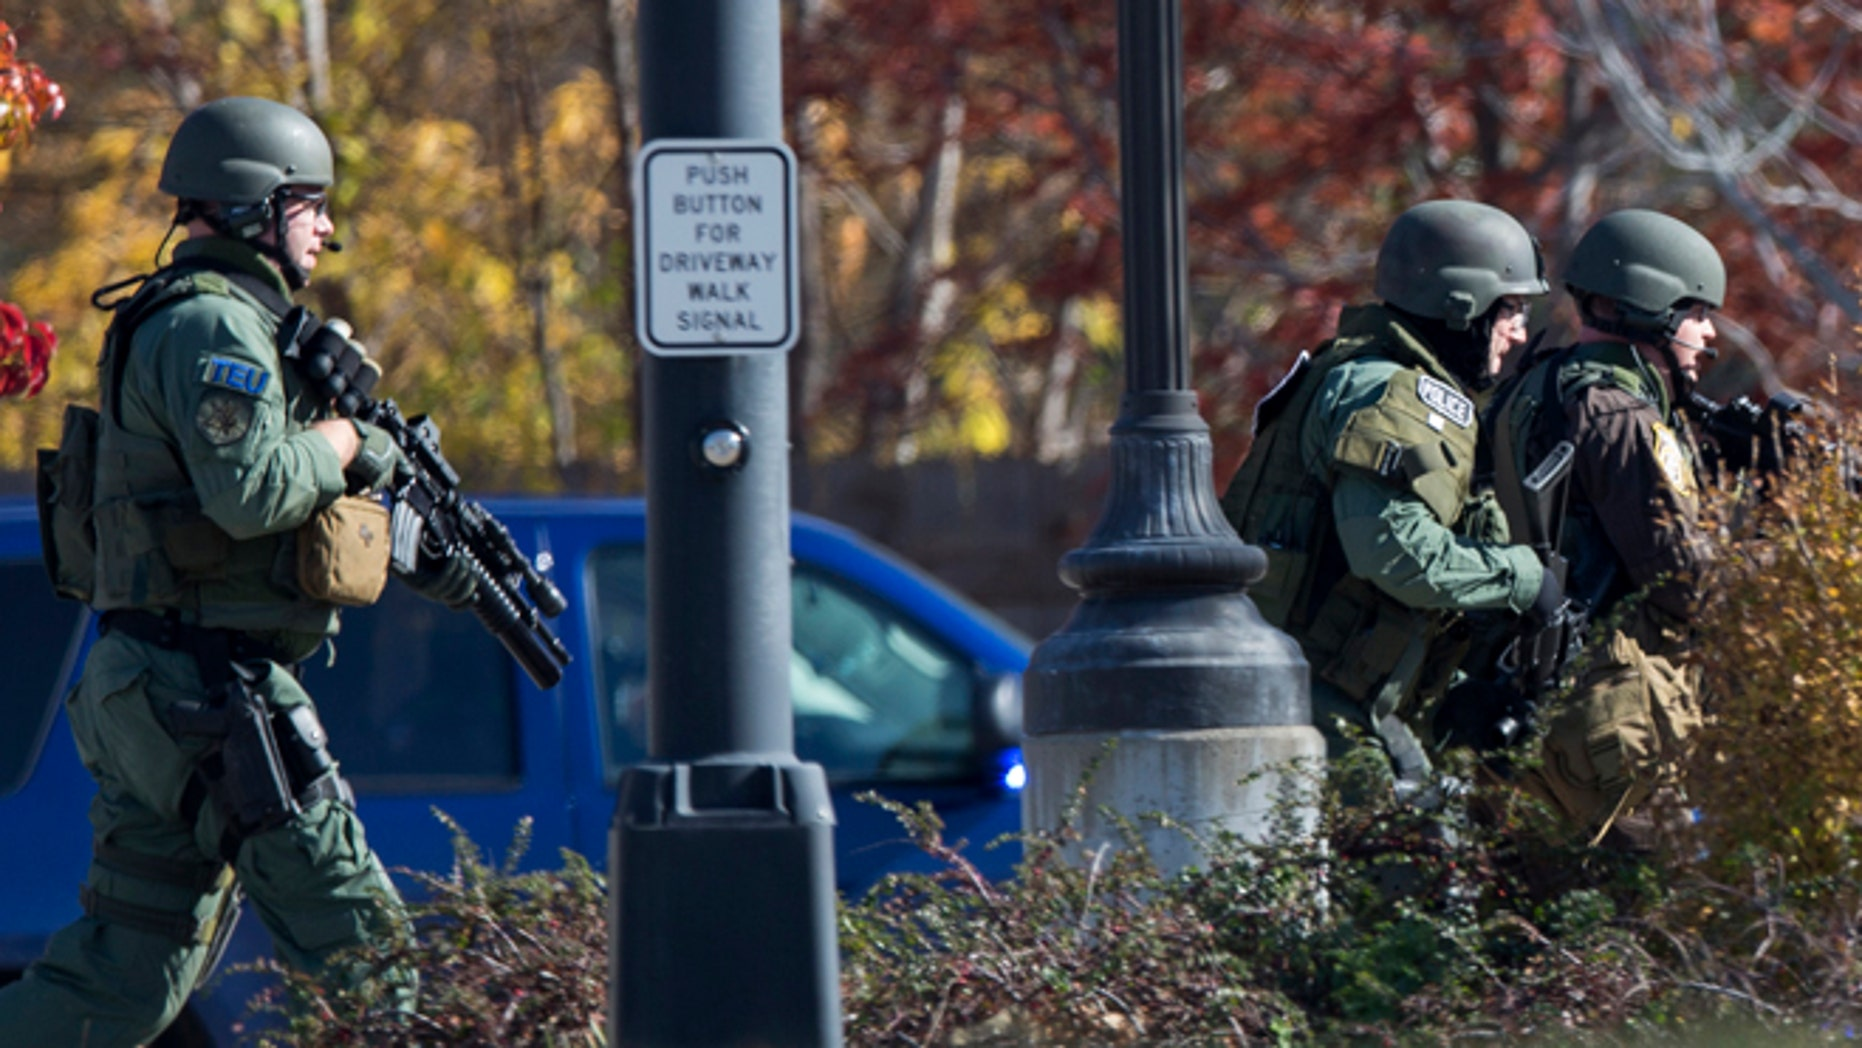 Oct. 21, 2012: Police and swat team members respond to a call of a shooting at the Azana Spa in Brookfield, Wis.  Multiple people were wounded when someone opened fire at the spa near the Brookfield Square Mall.